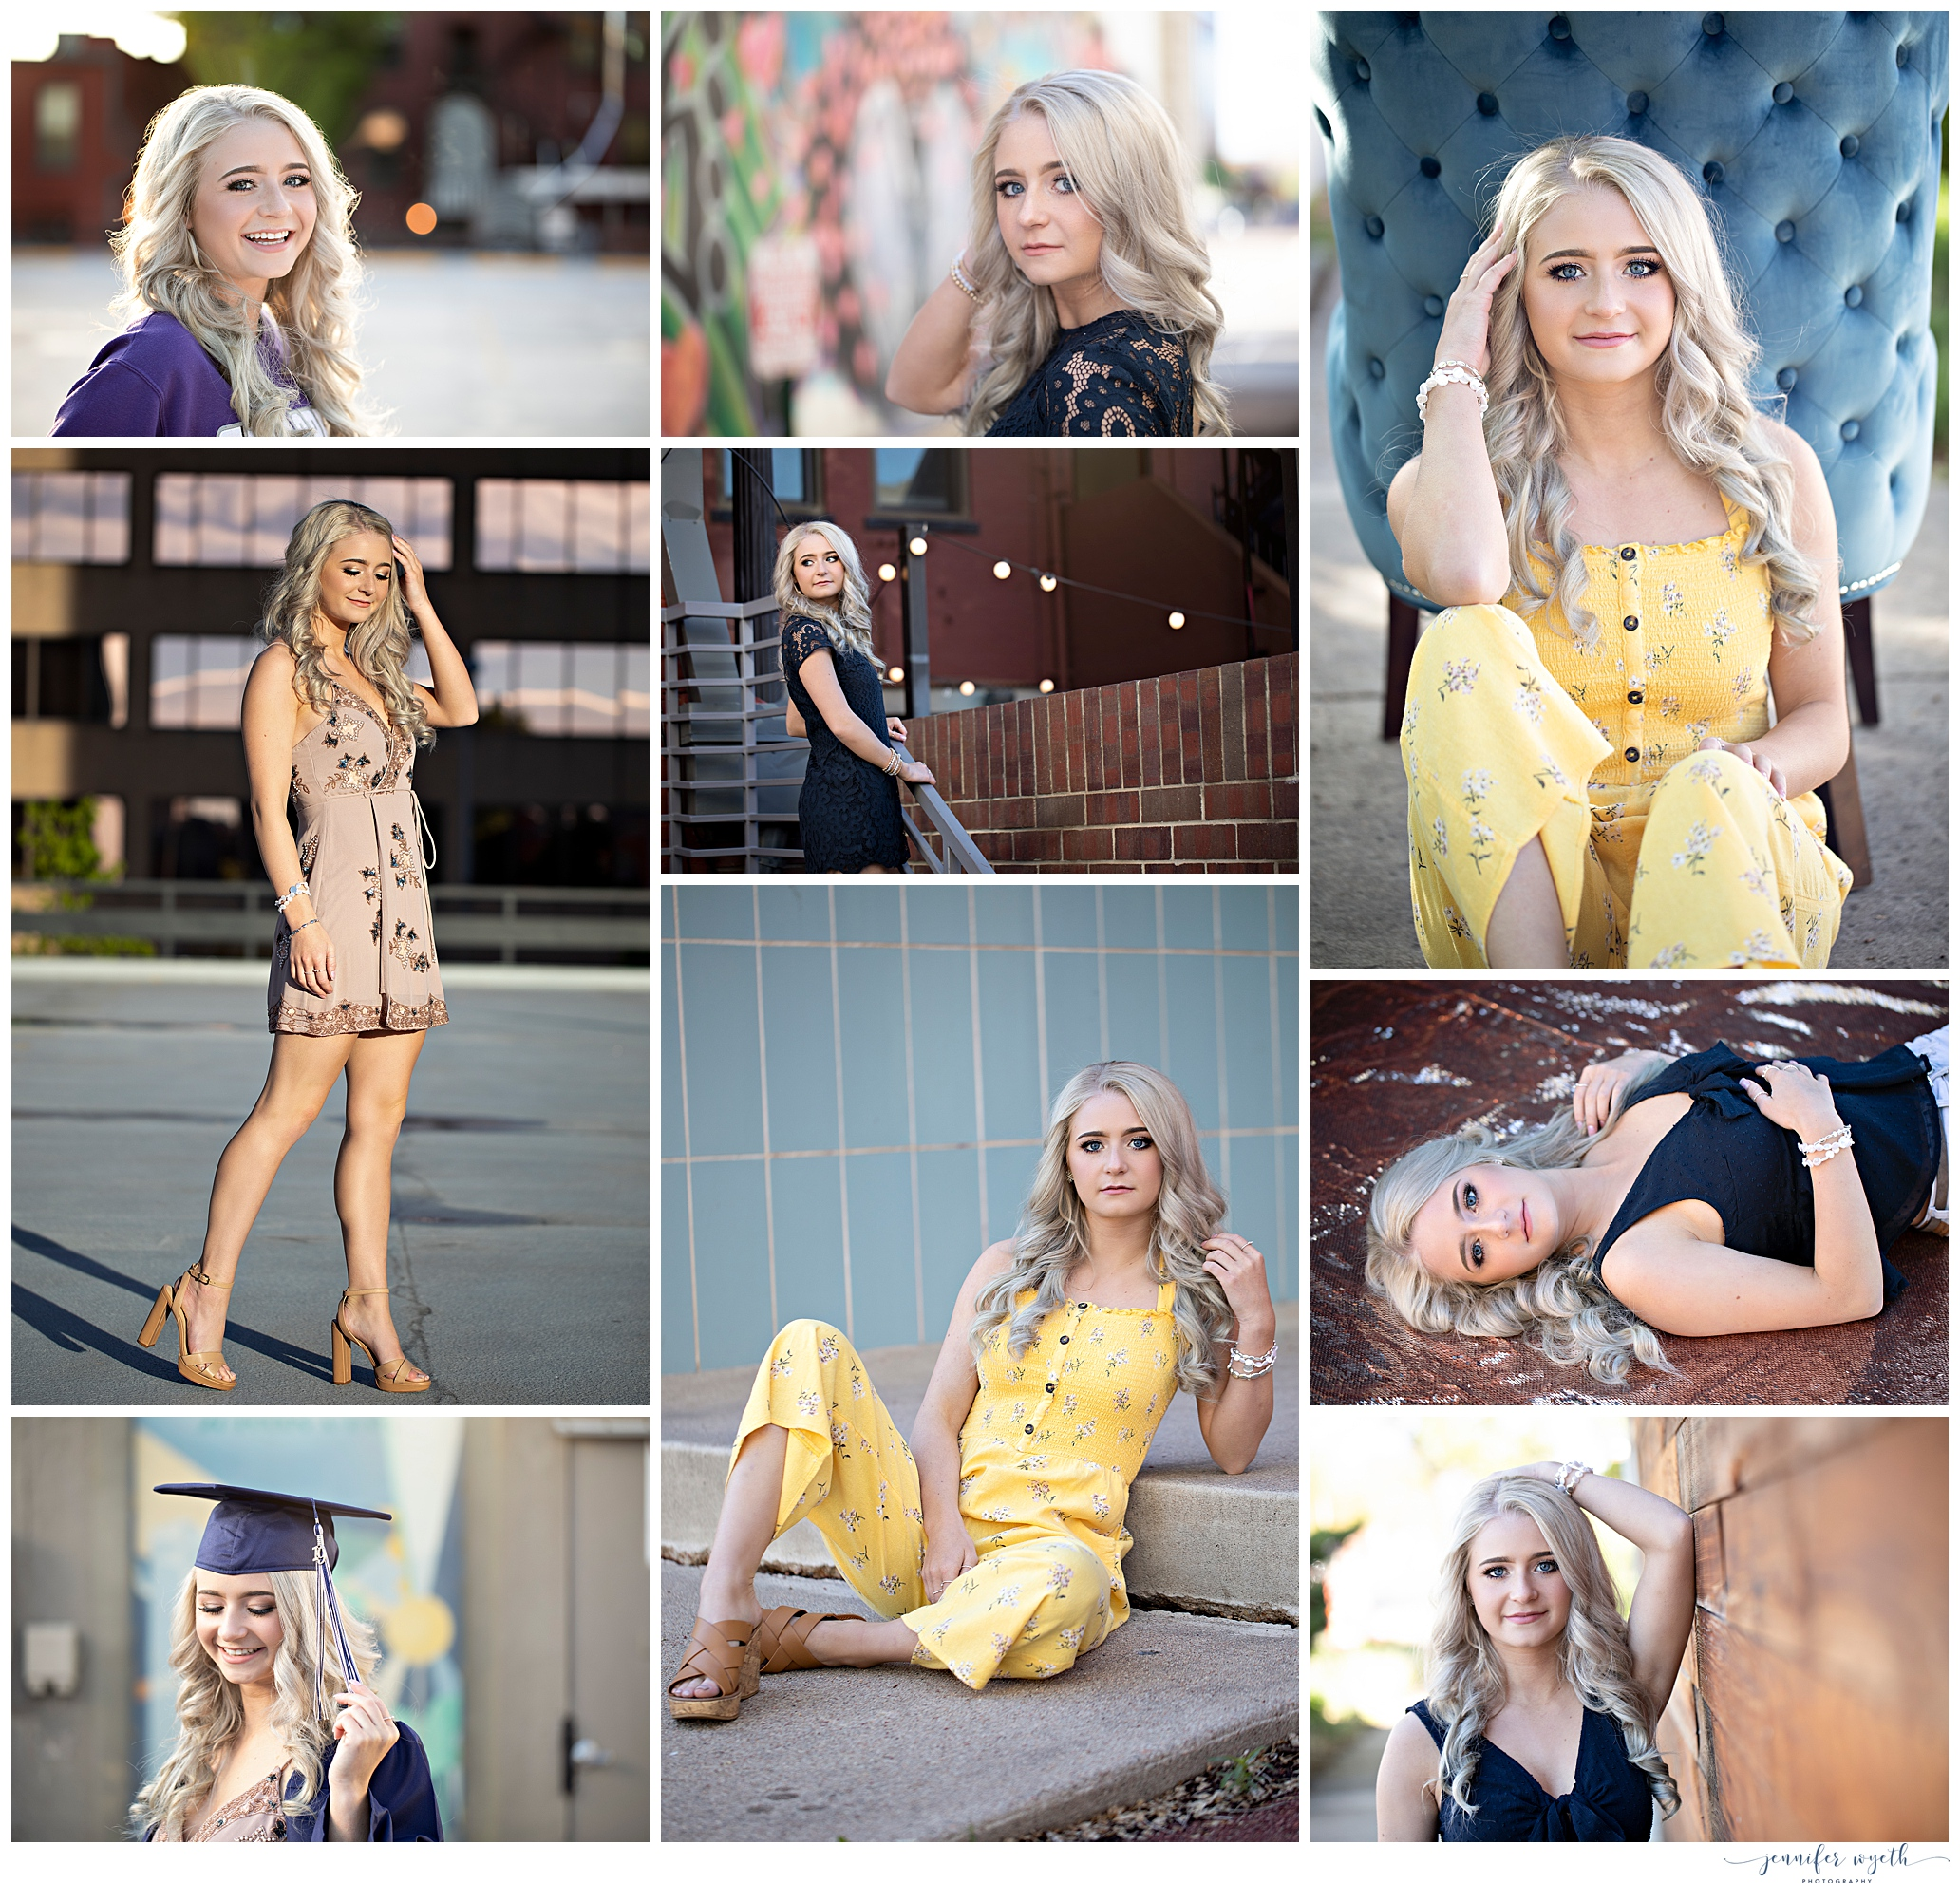 Jennifer-Wyeth-photography-senior-pictures-colorado-springs-photographer_0303.jpg